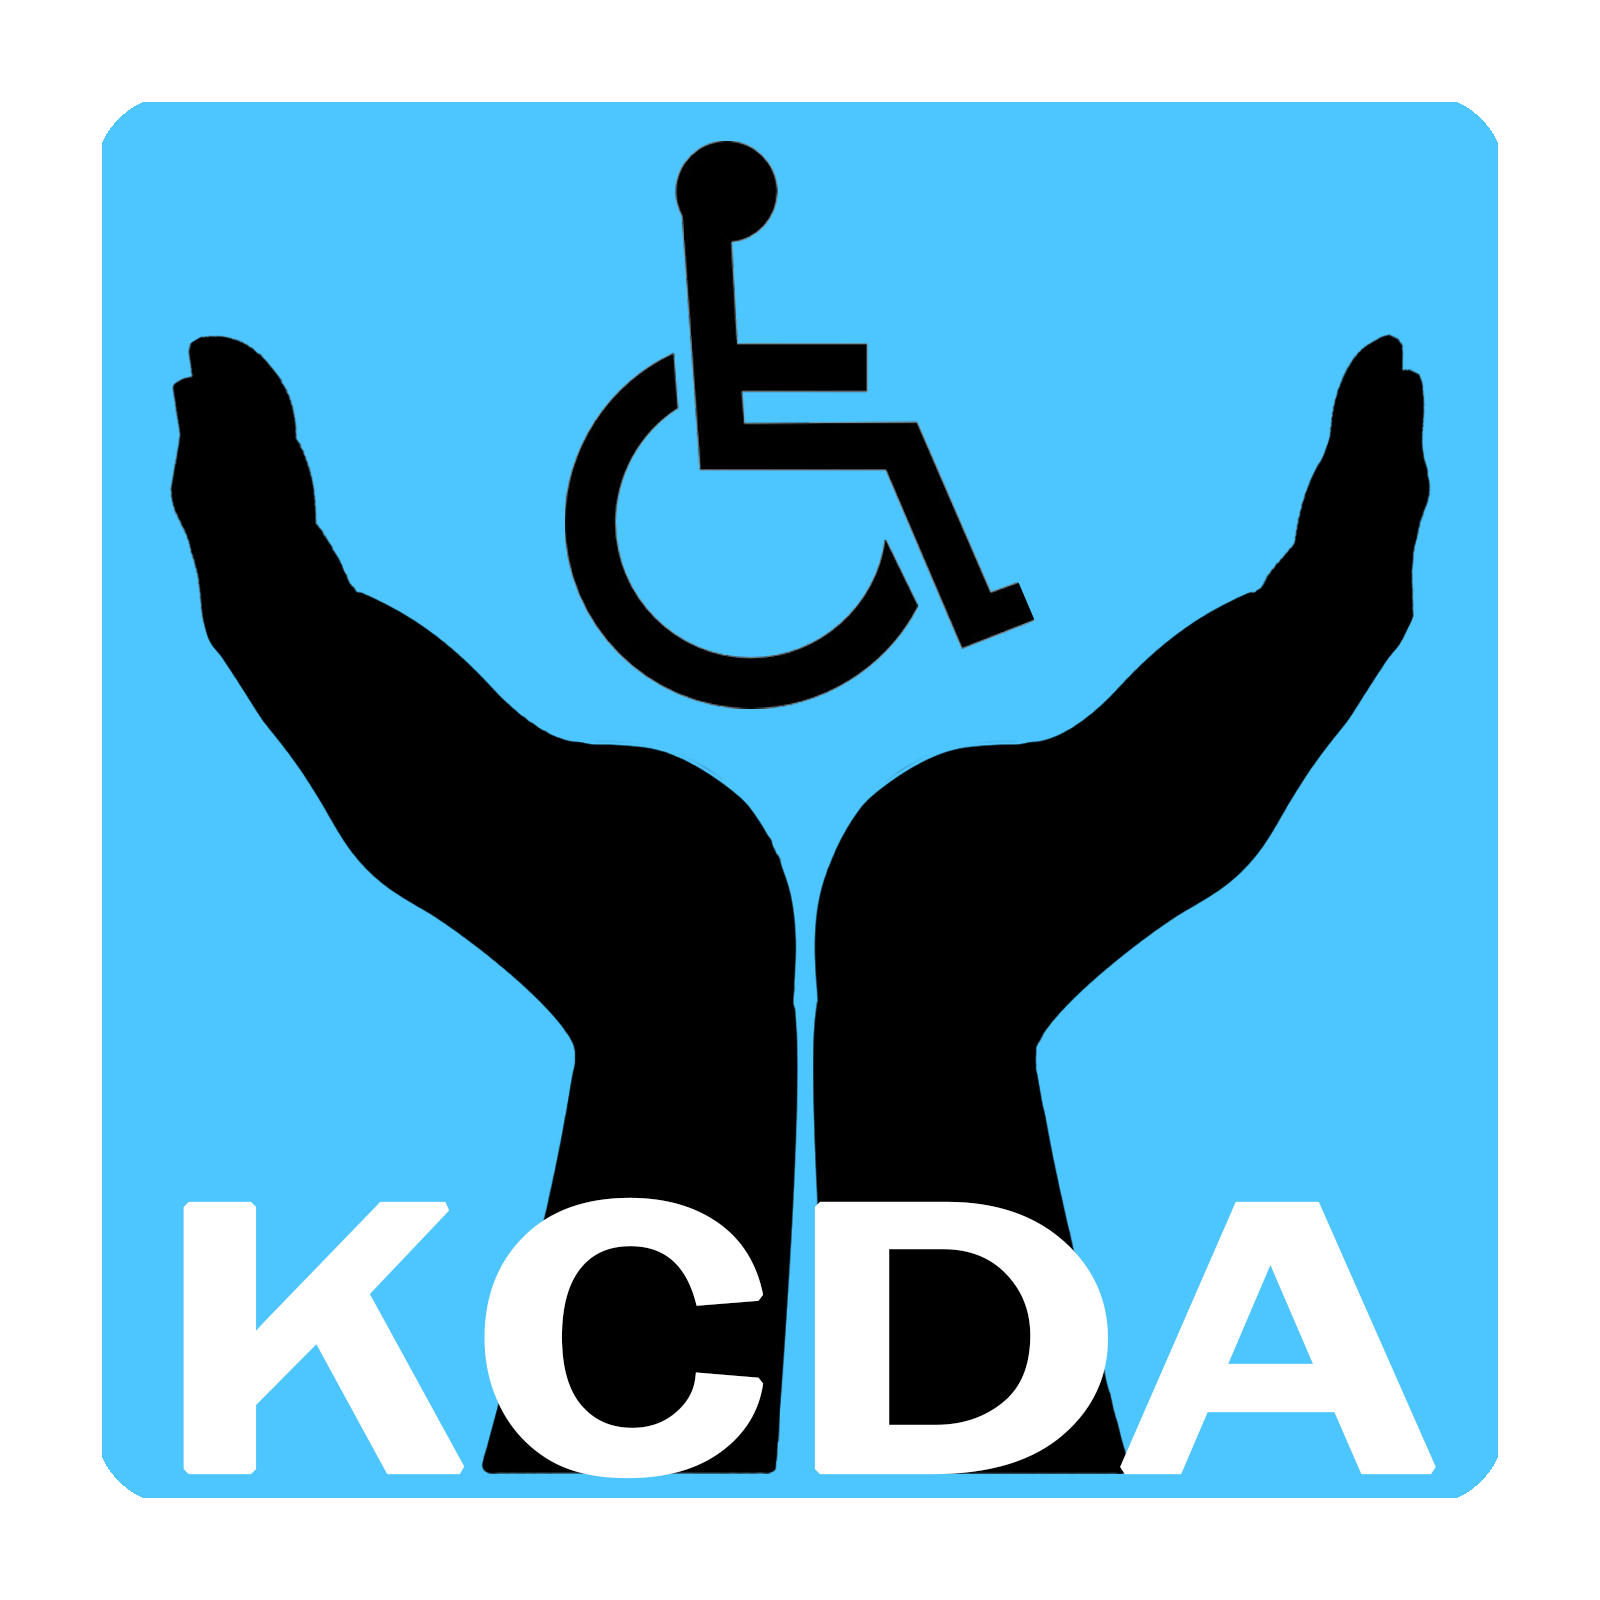 The Logo of KCDA (Kerala State Confederation of the